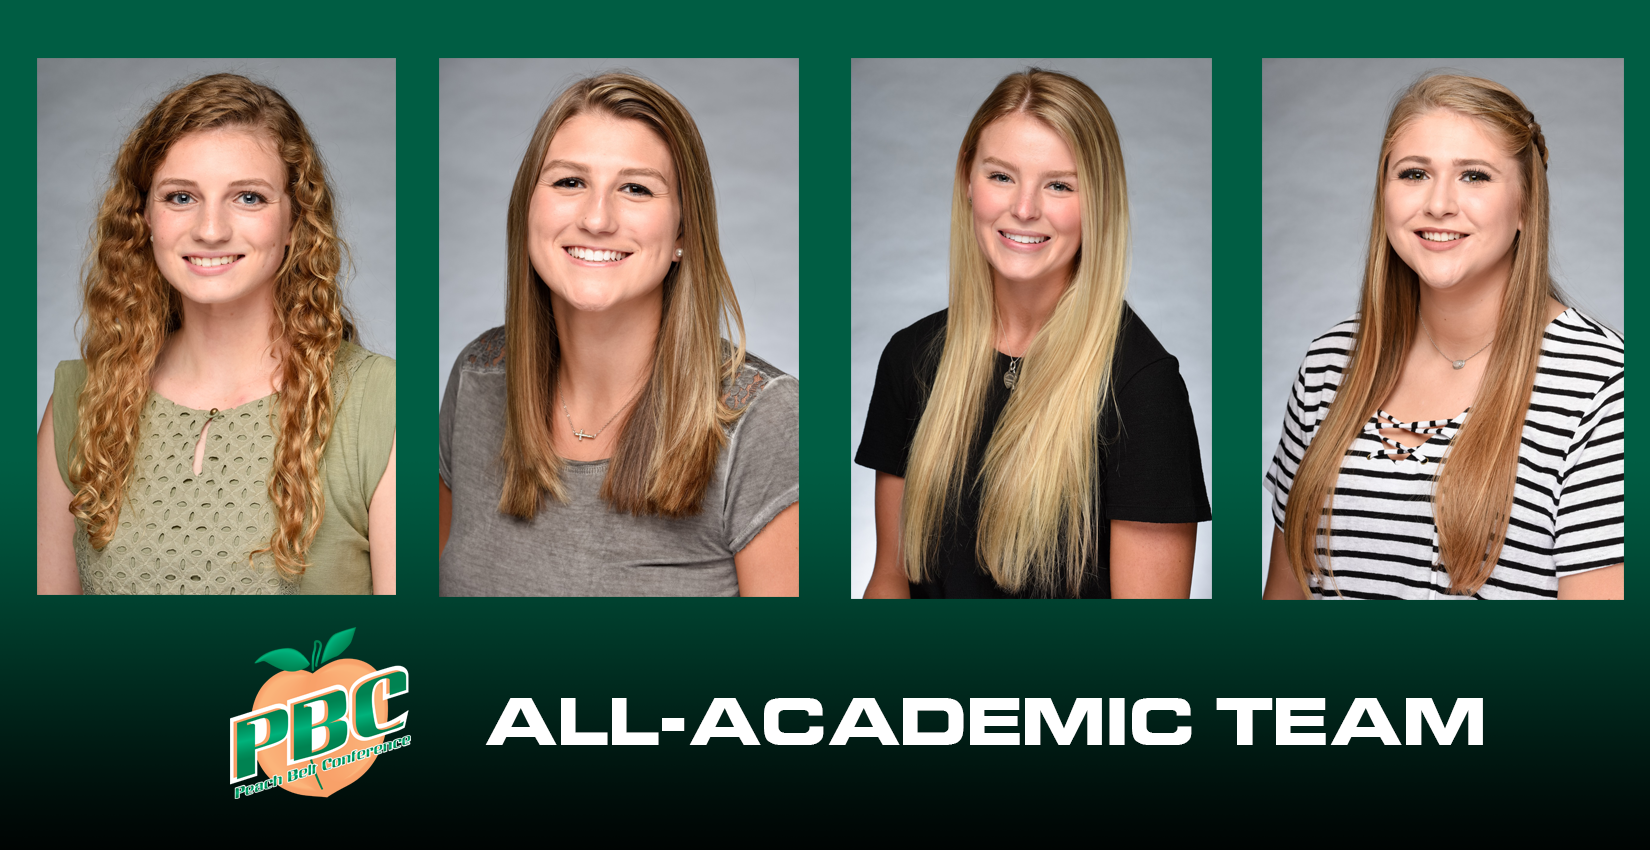 PBC All-Academic Team